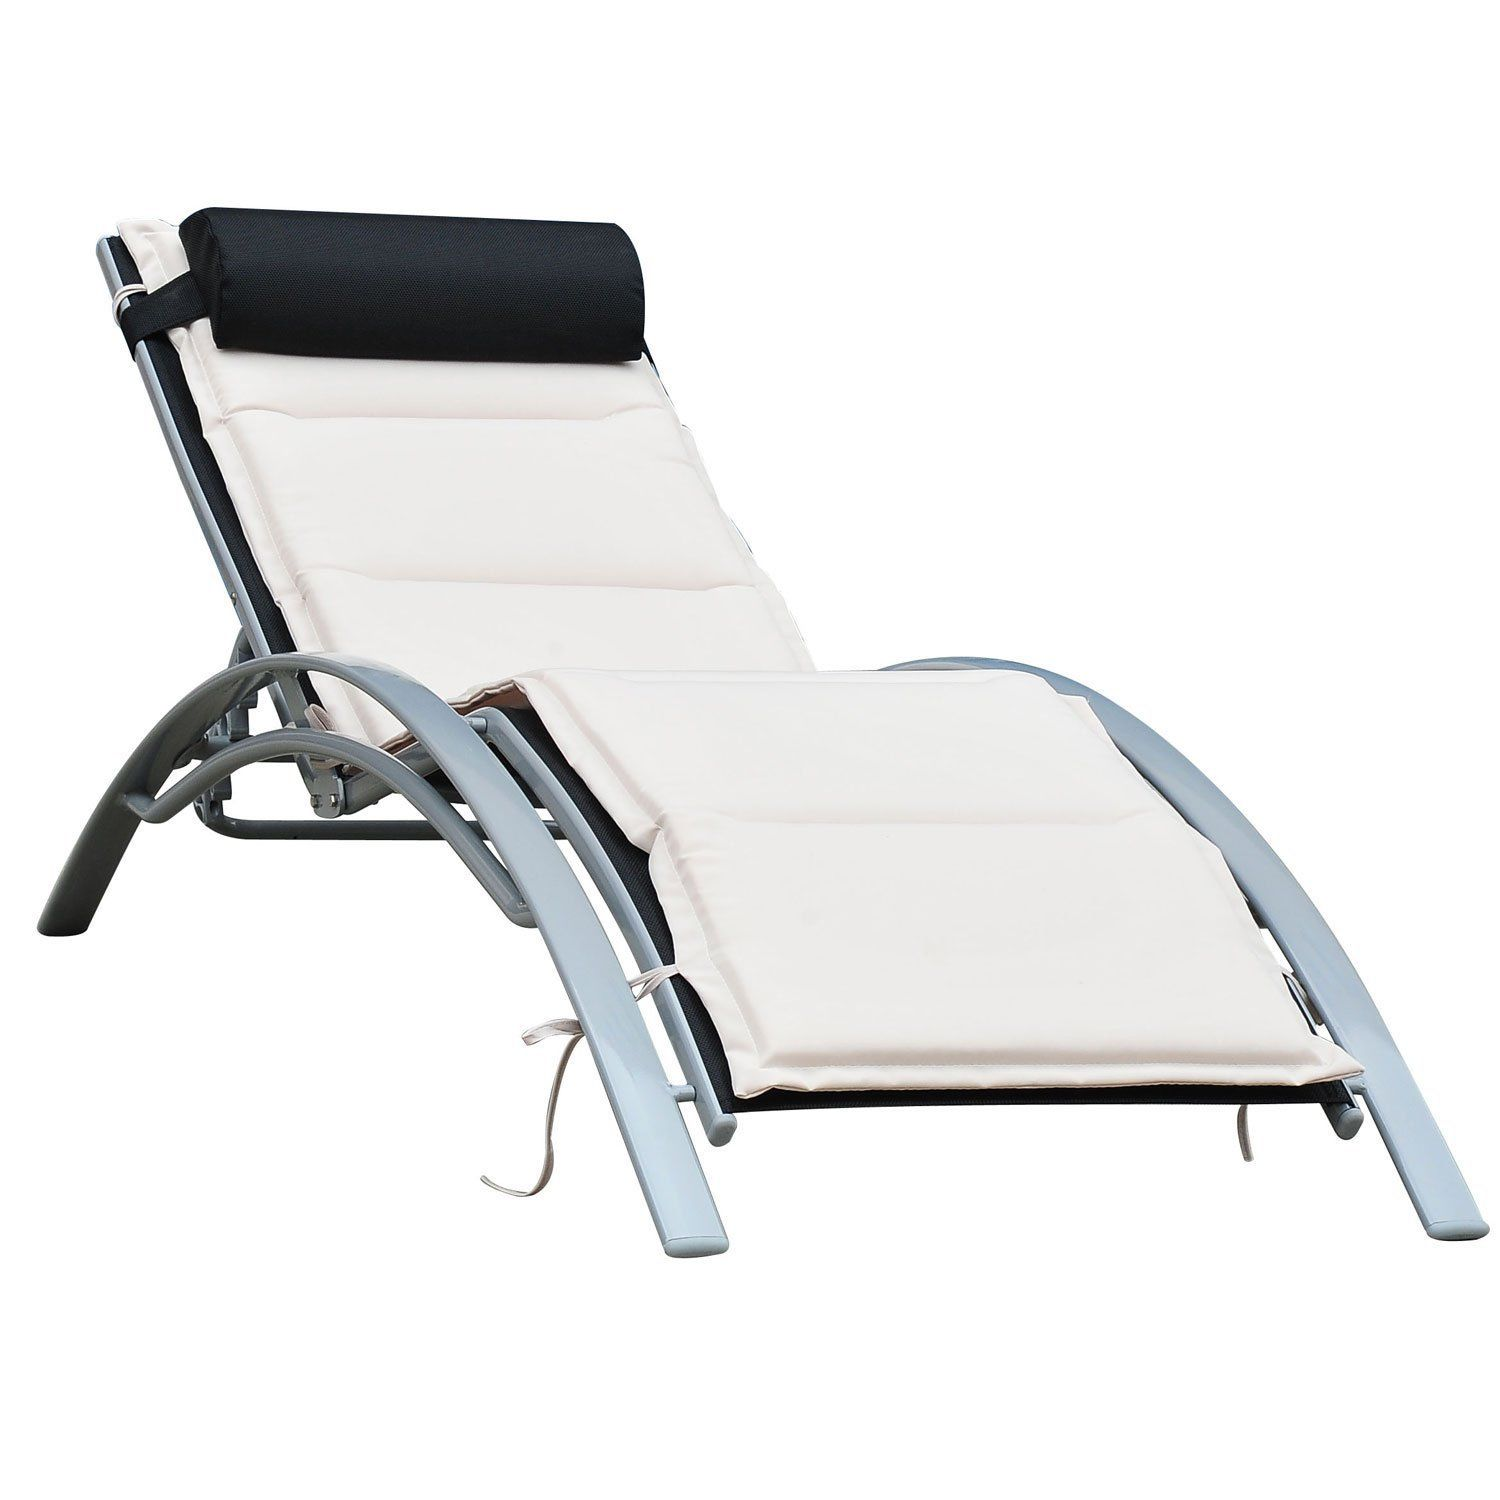 Outsunny Patio Reclining Chaise Lounge Chair with Cushion - Black and Cream White  sc 1 st  Walmart & Outsunny Patio Reclining Chaise Lounge Chair with Cushion - Black ... islam-shia.org